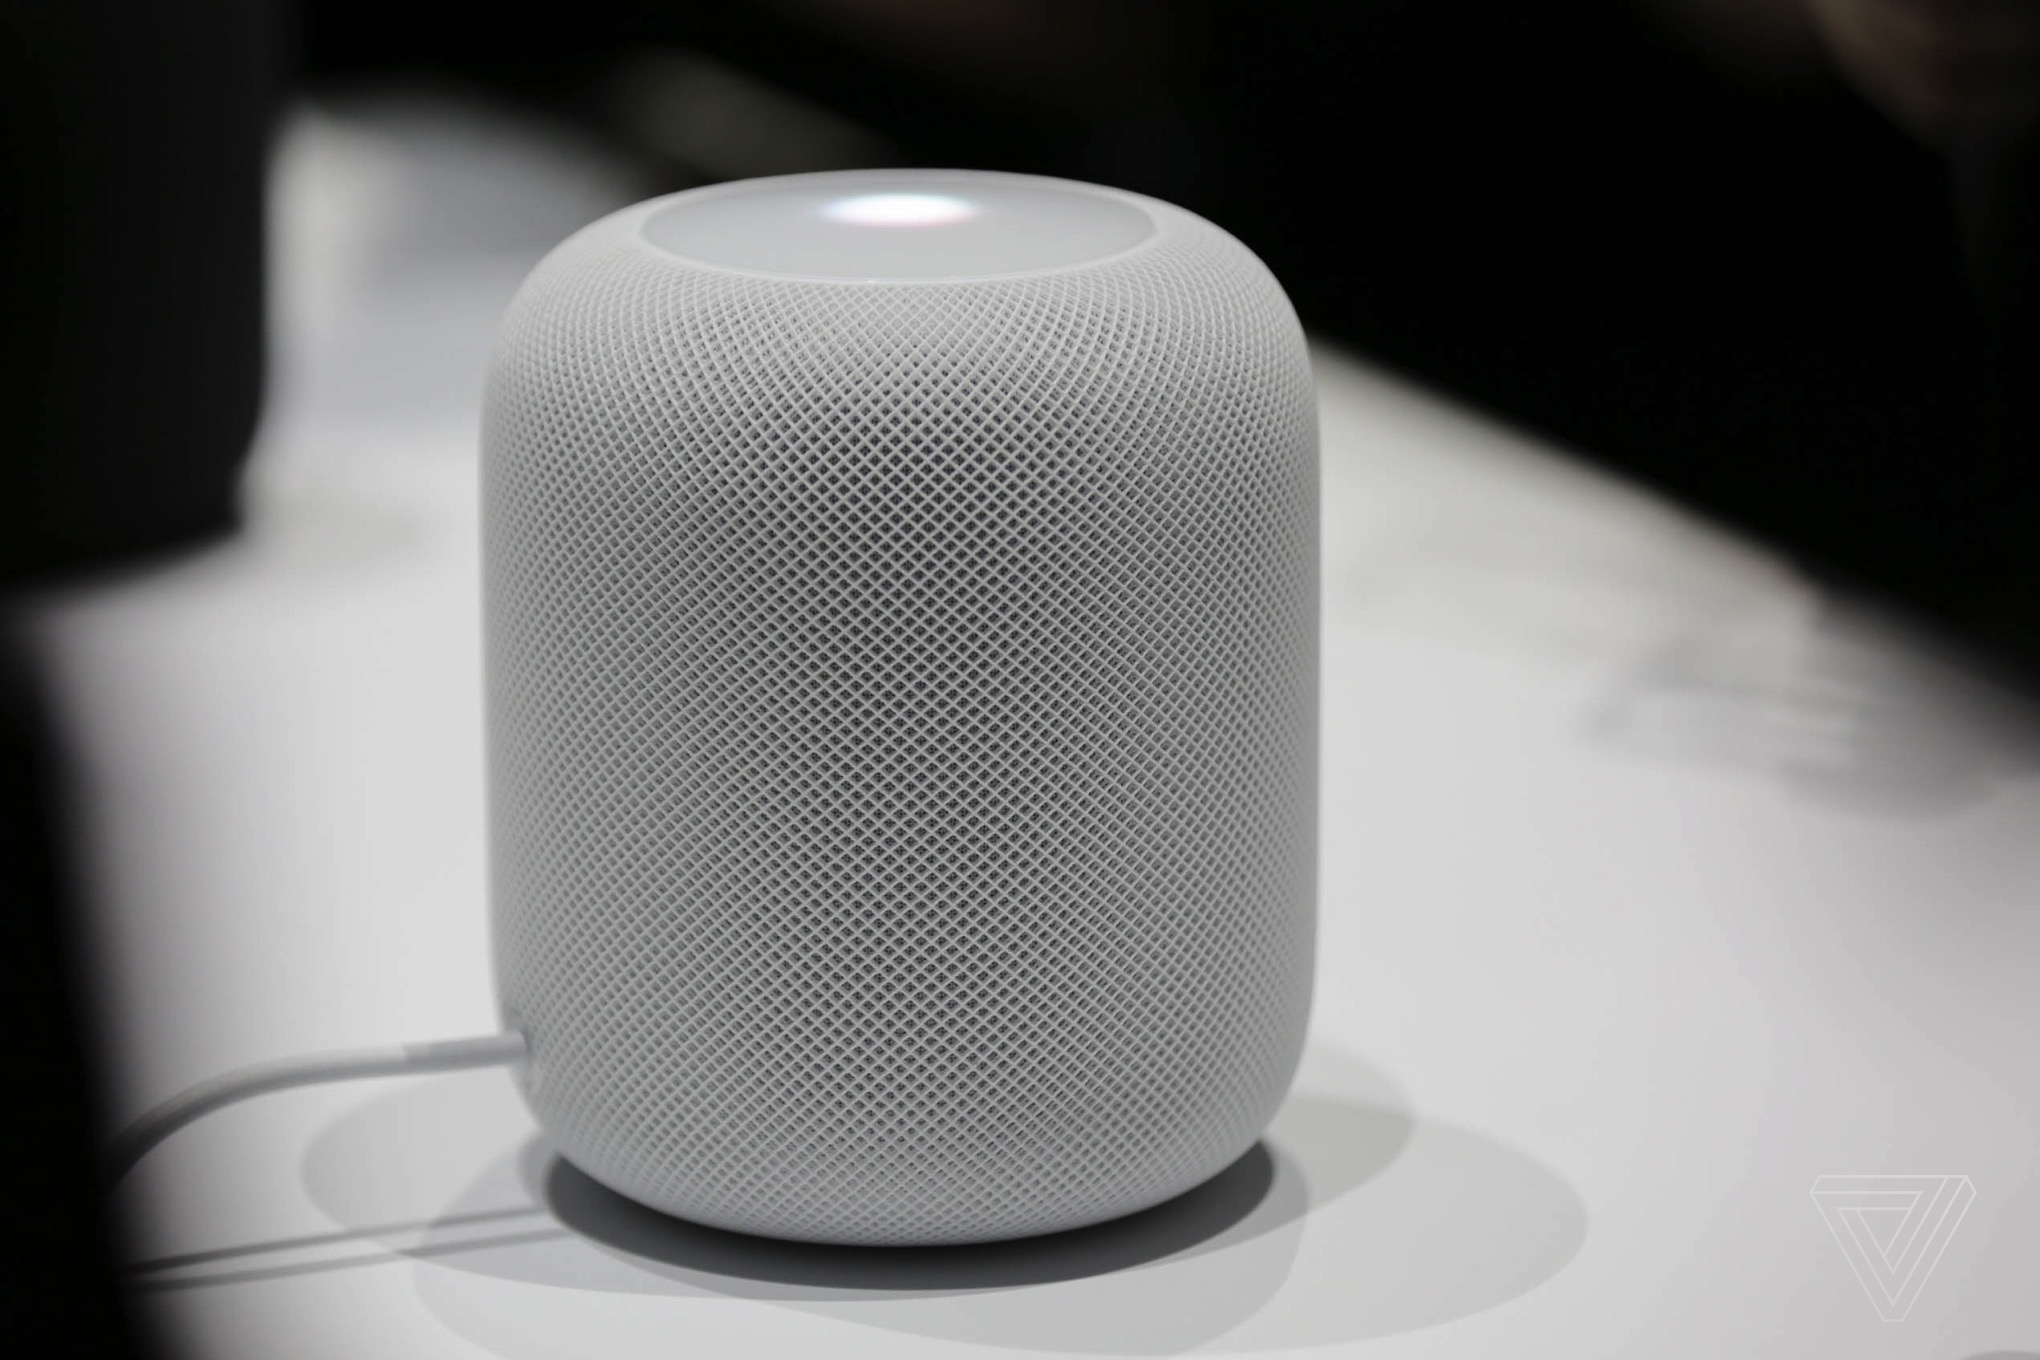 where does the smart home fit into apple 39 s homepod the. Black Bedroom Furniture Sets. Home Design Ideas